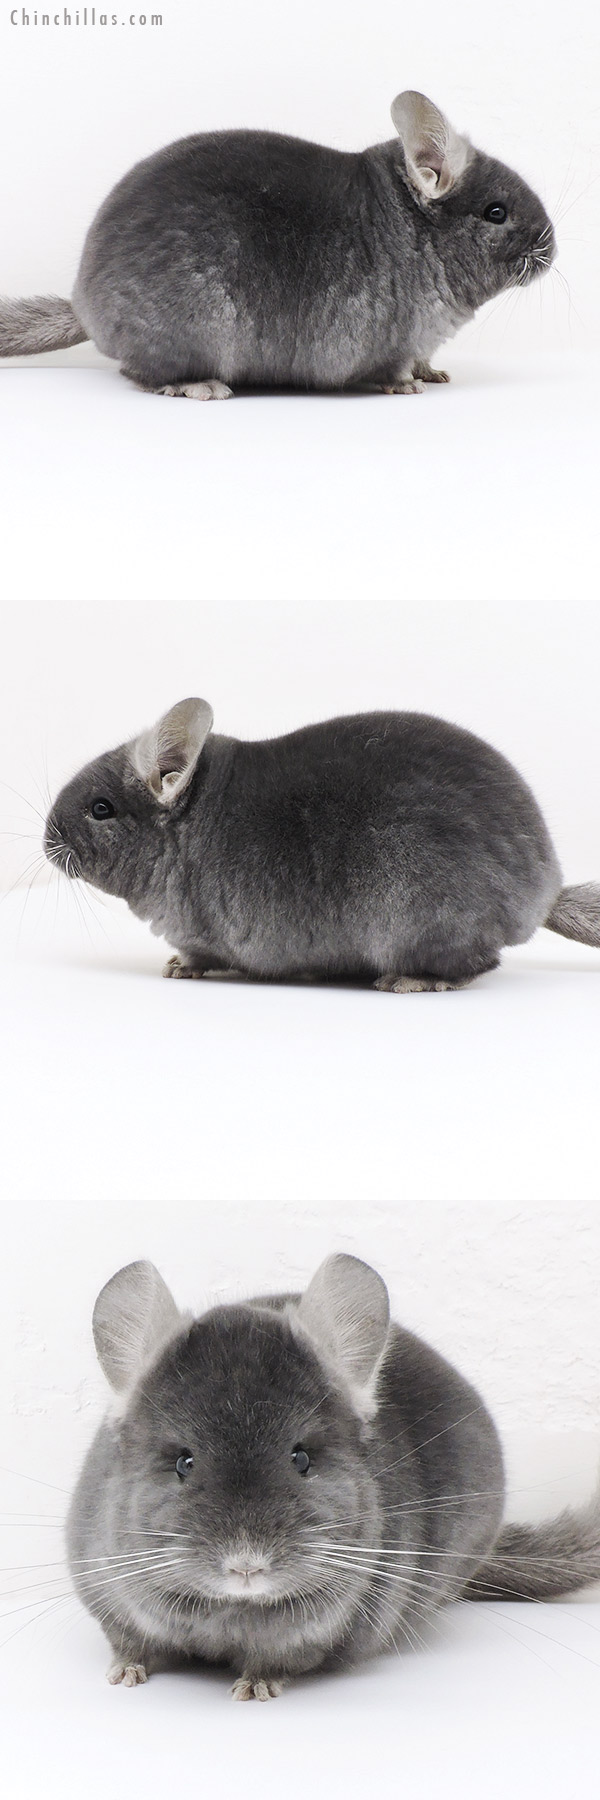 19185 Top Show Quality Wrap Around Sapphire Male Chinchilla